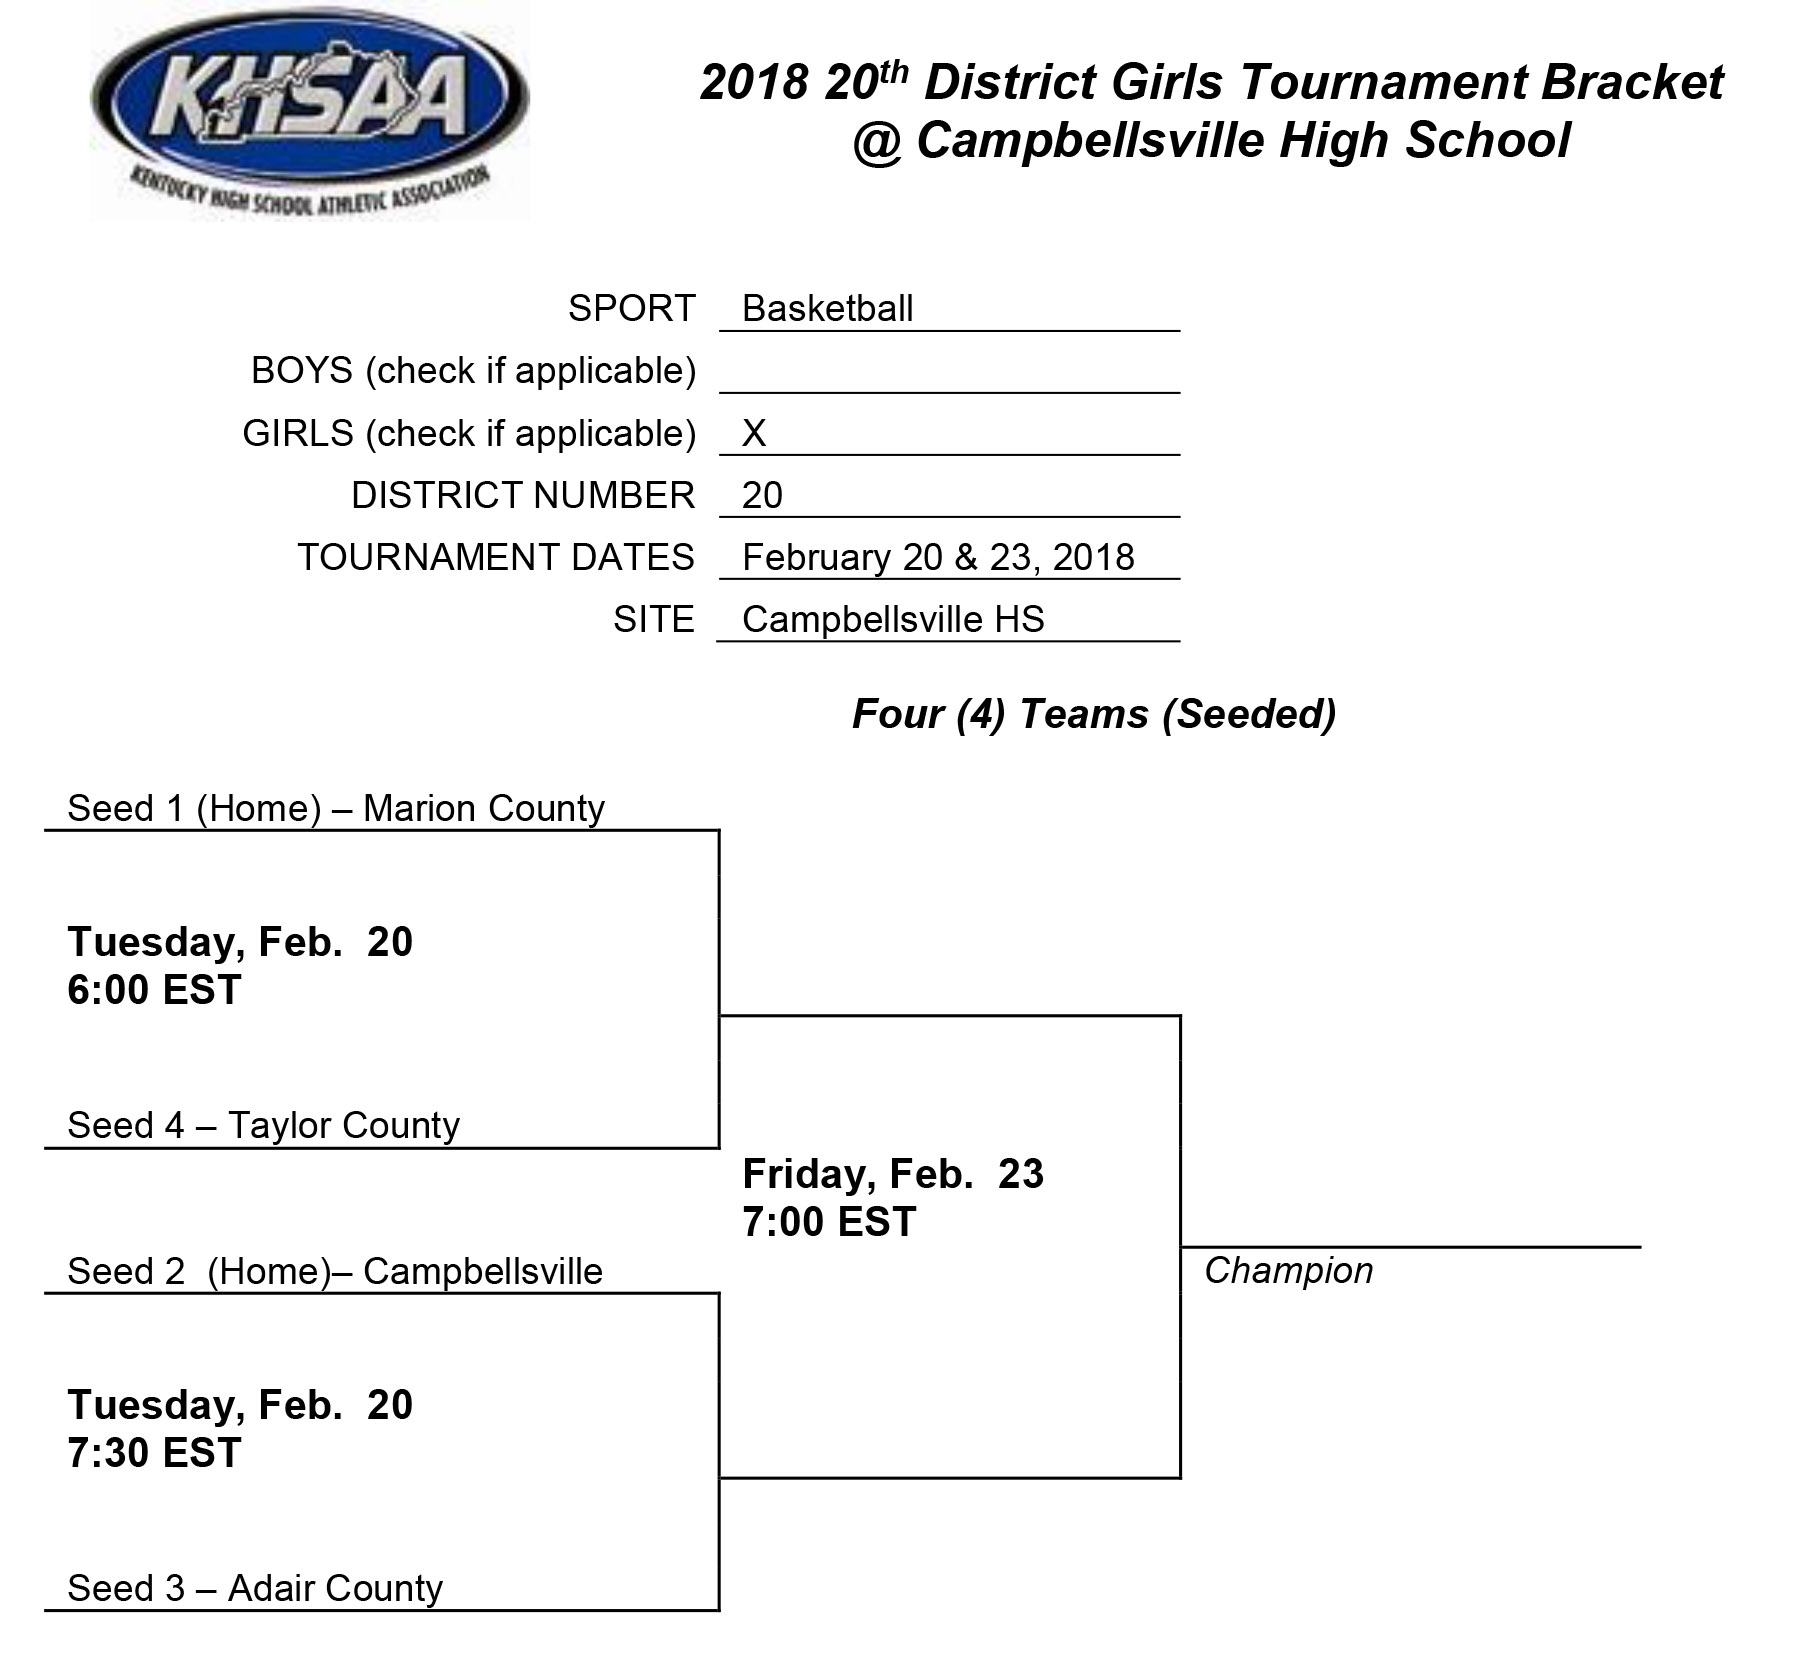 Girls Tournament Bracket